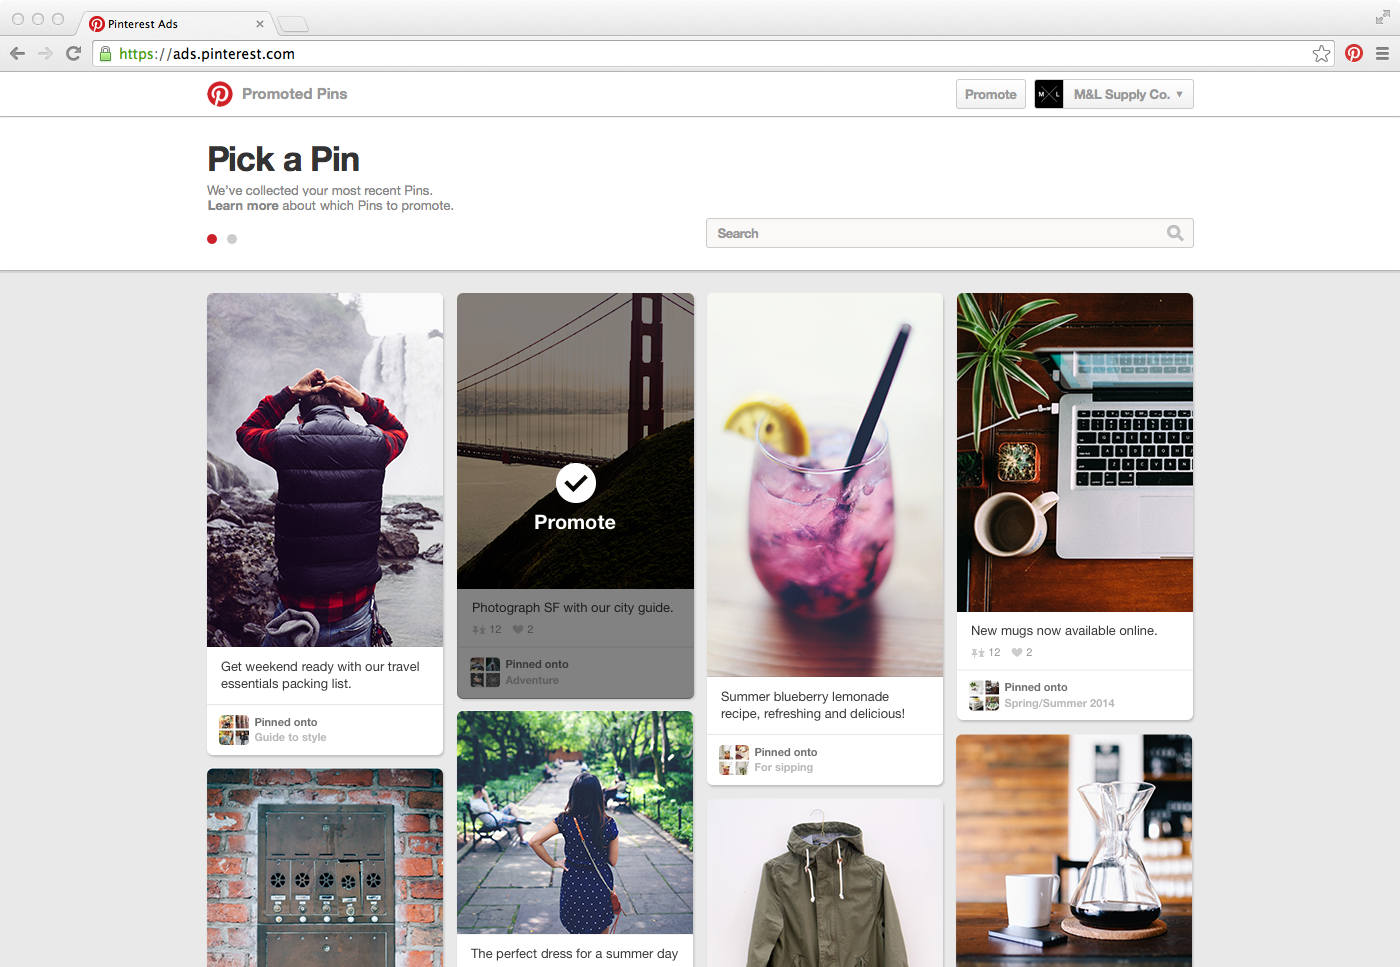 Pinterest do it yourself promoted pins